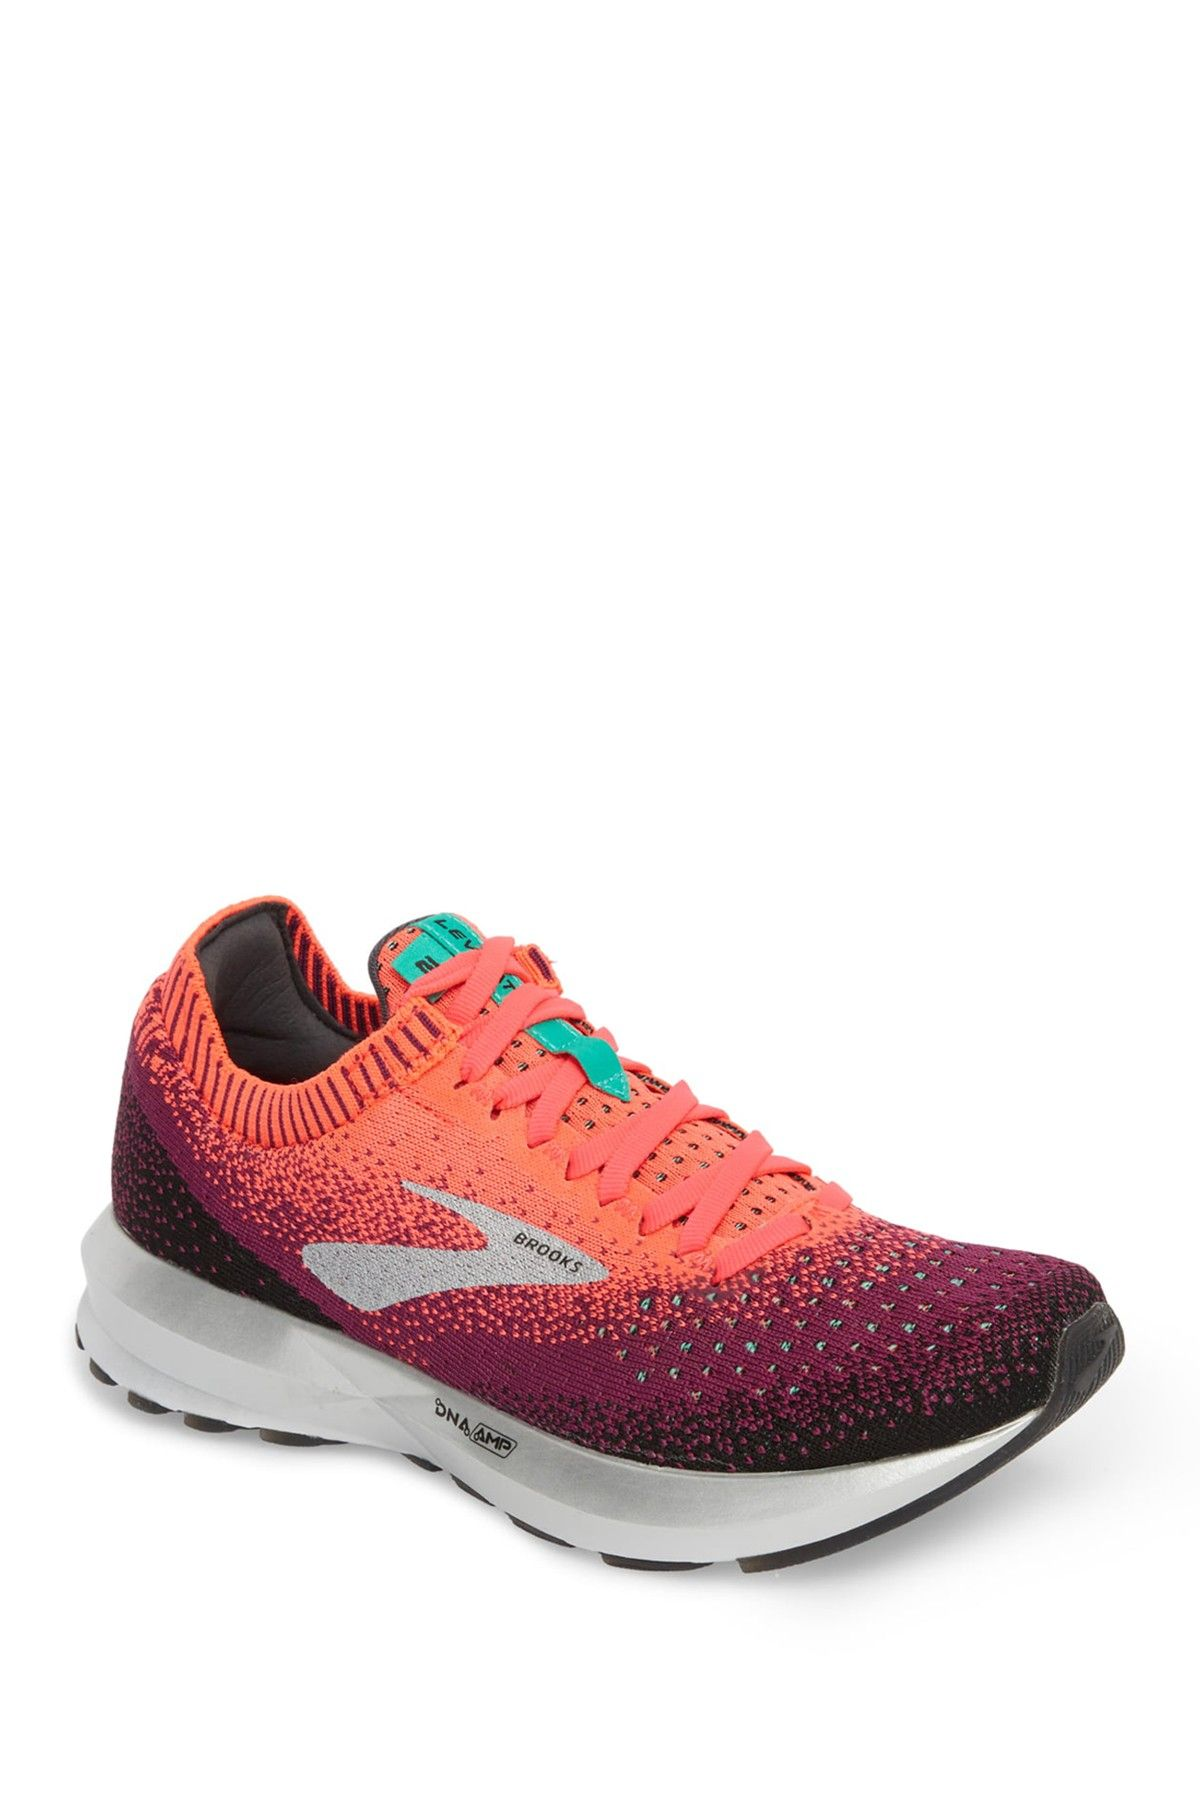 Levitate 2 Running Shoe by Brooks on nordstrom_rack in